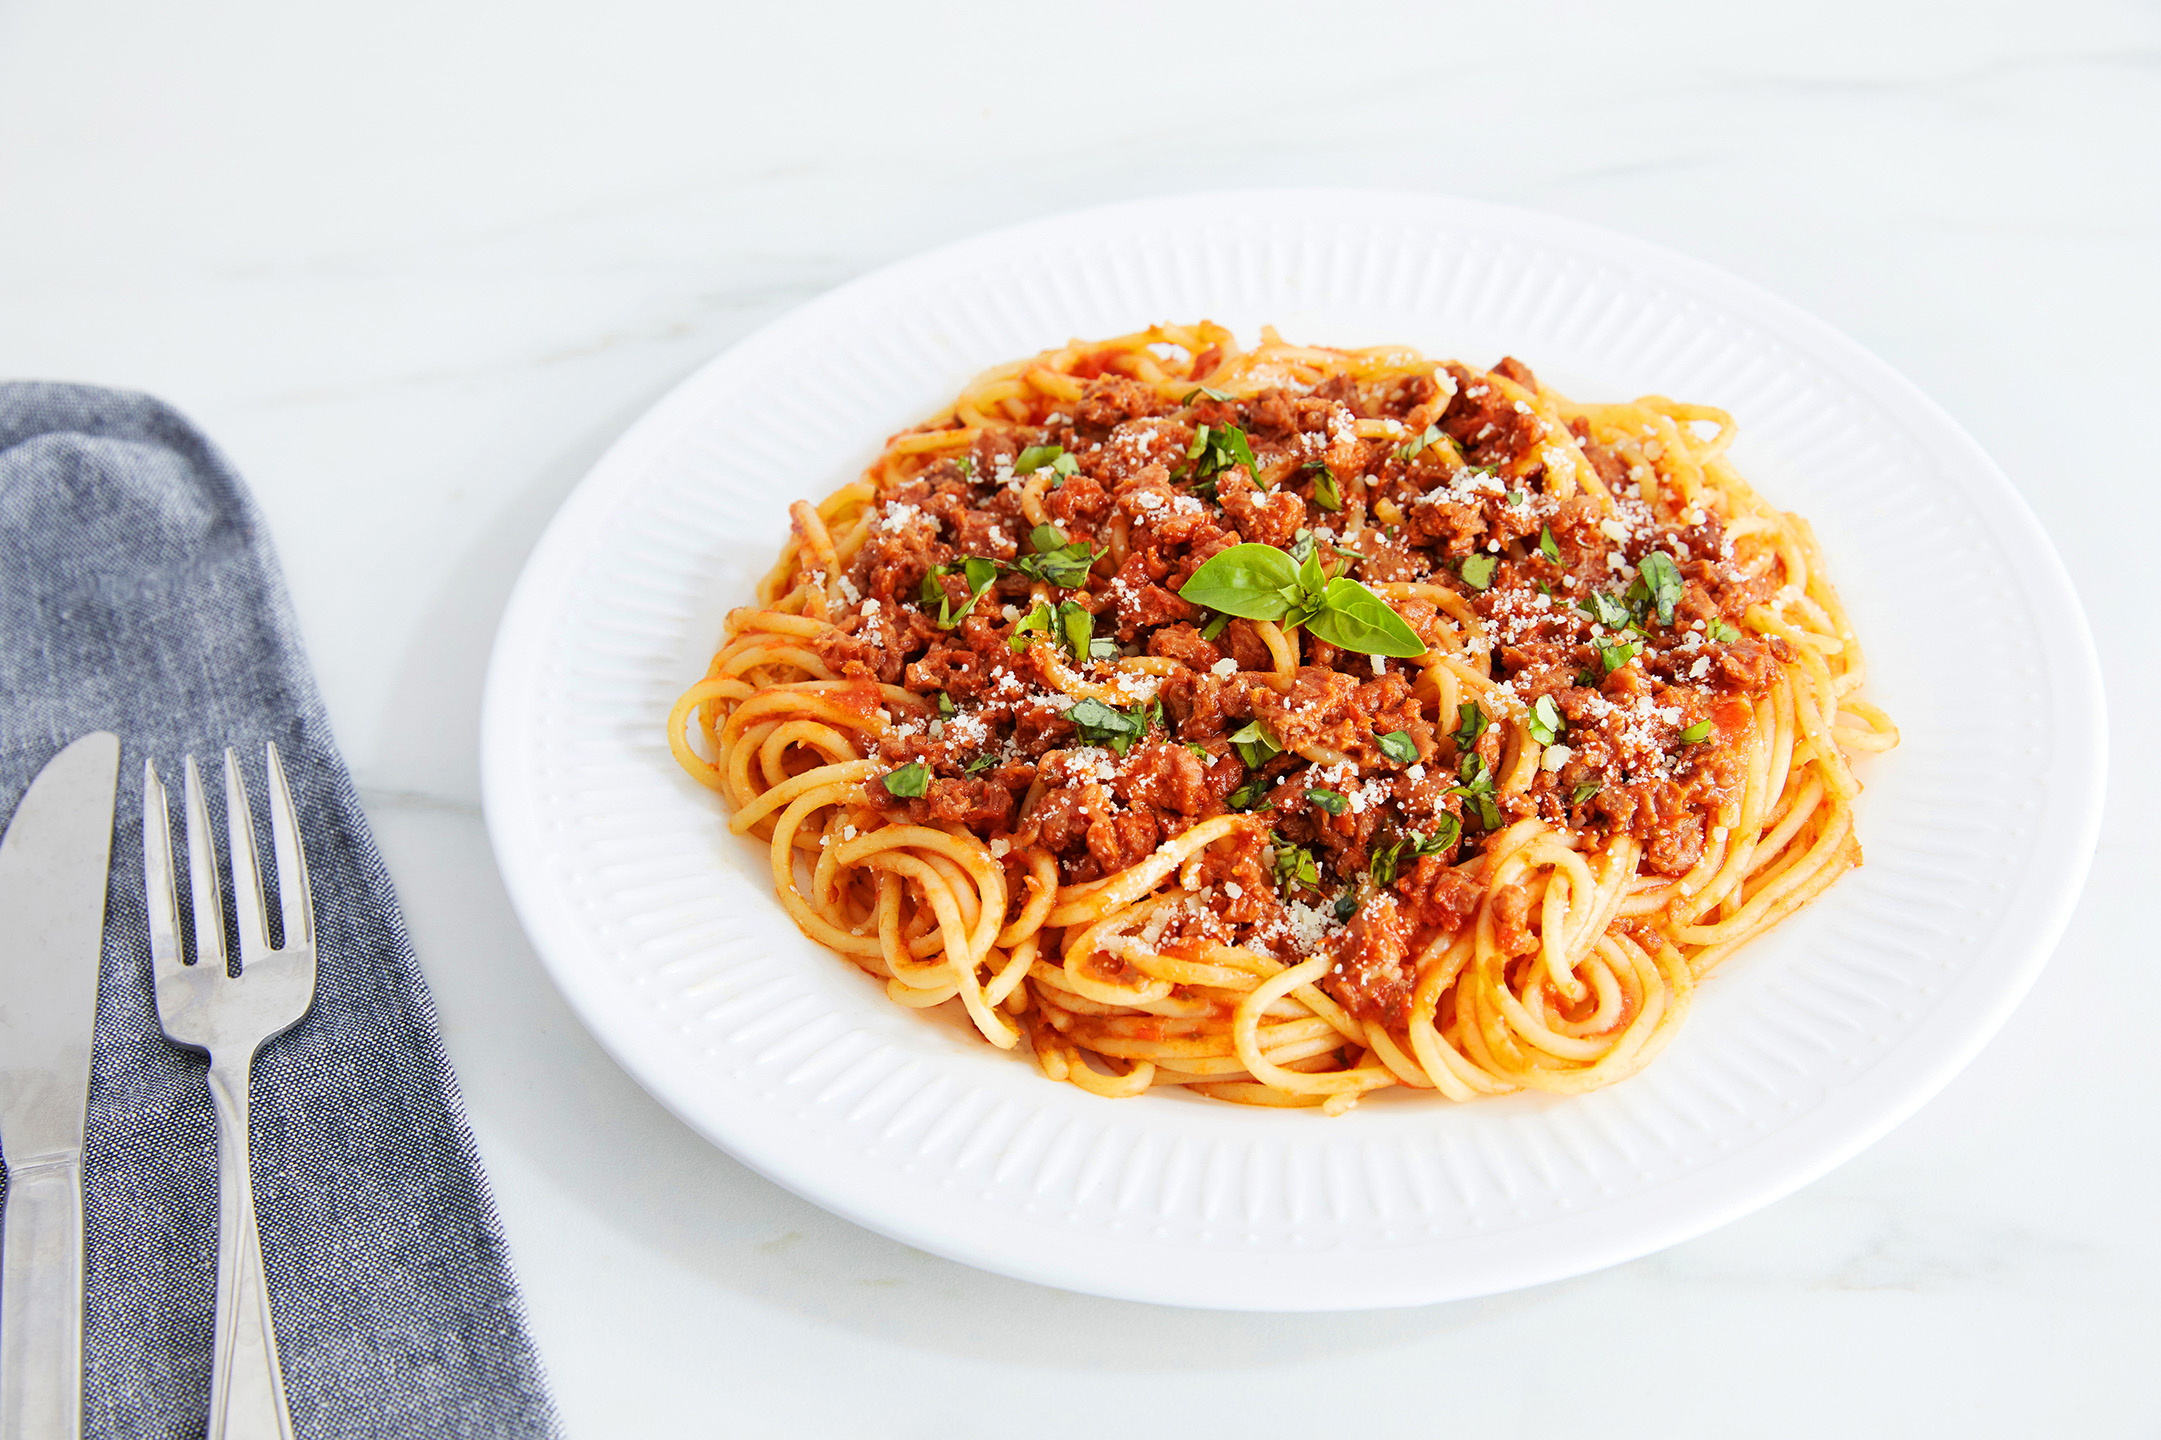 A plate of spaghetti made with OZO ground.